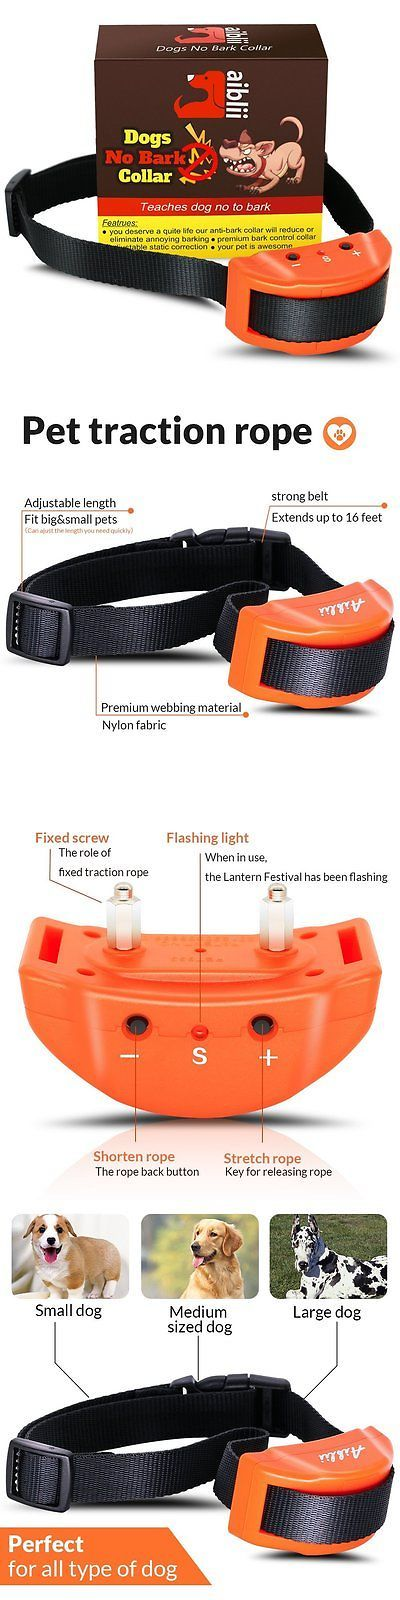 Bark Collars 66774: No Bark Collar For Dog By Aiblii- Anti Shock Stop Barking Control Training - 7 -> BUY IT NOW ONLY: $78.71 on eBay!